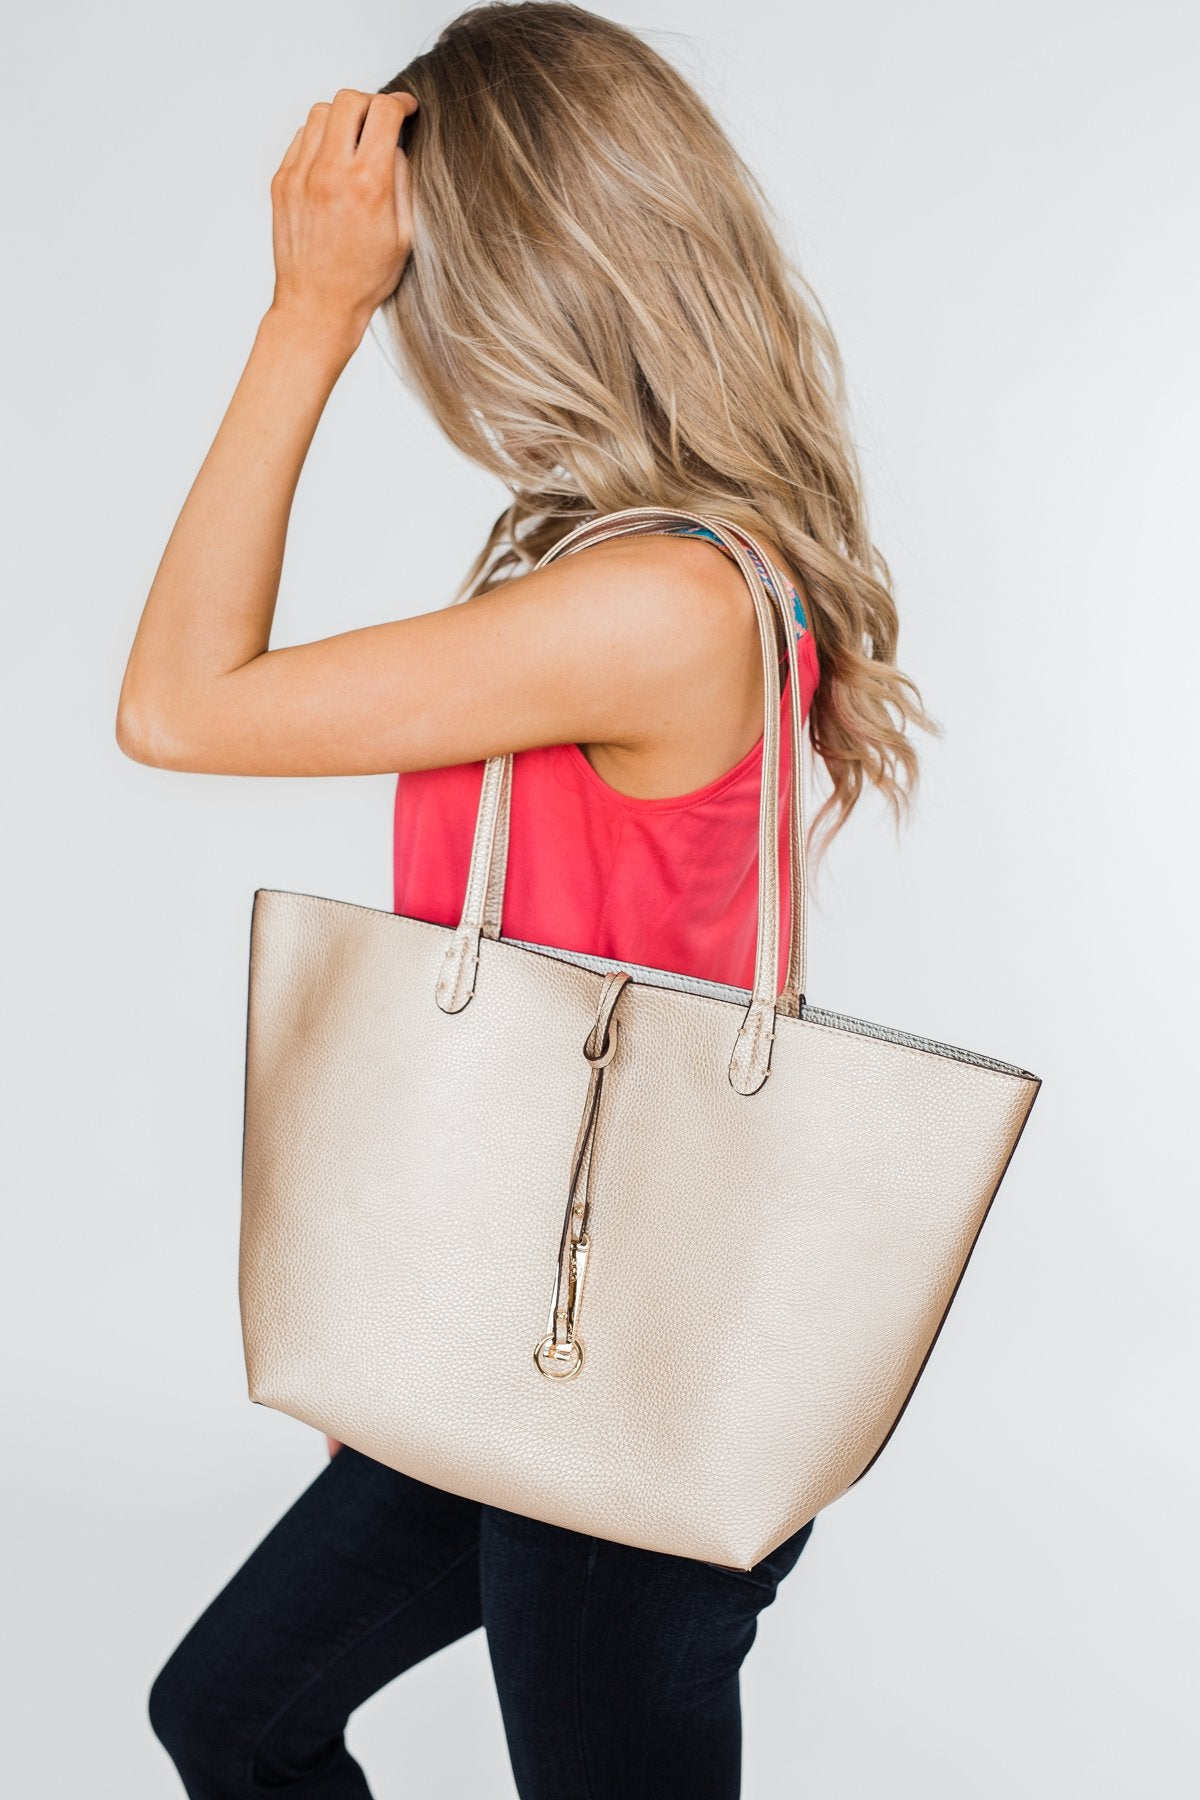 Reversible Tote- Gold/Silver